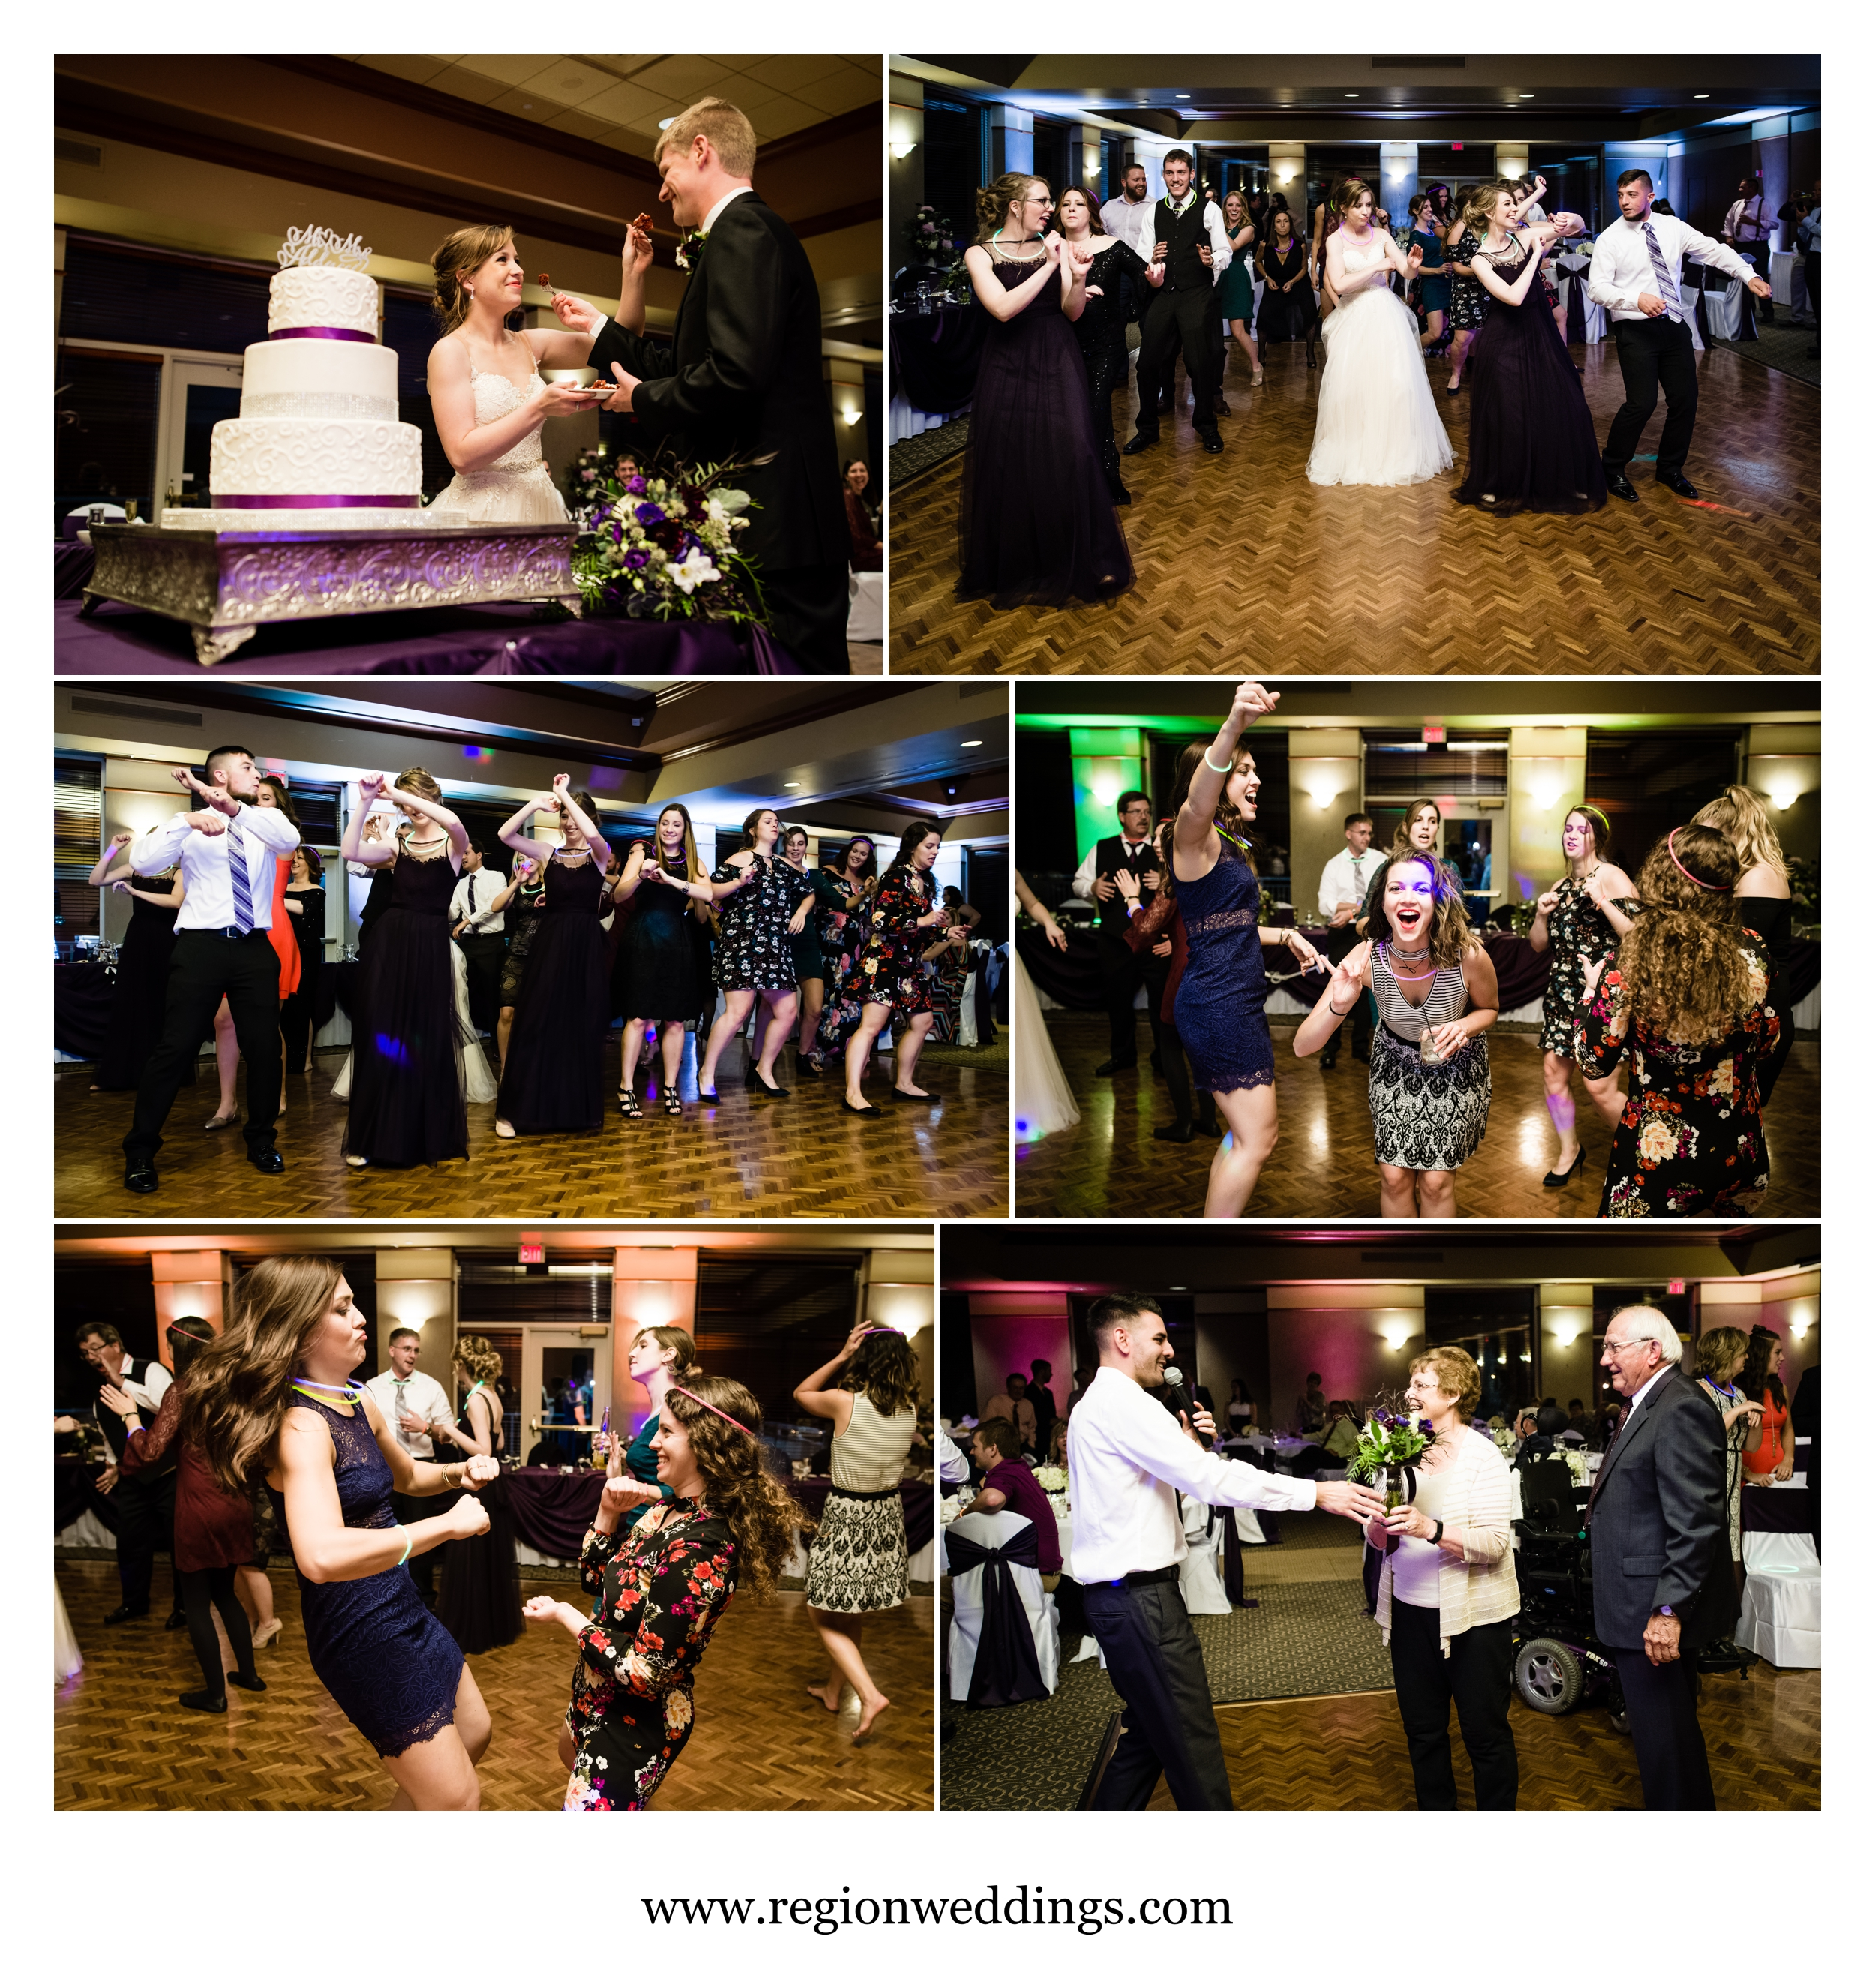 Party time on the dance floor during a wedding reception at Sand Creek Country Club.